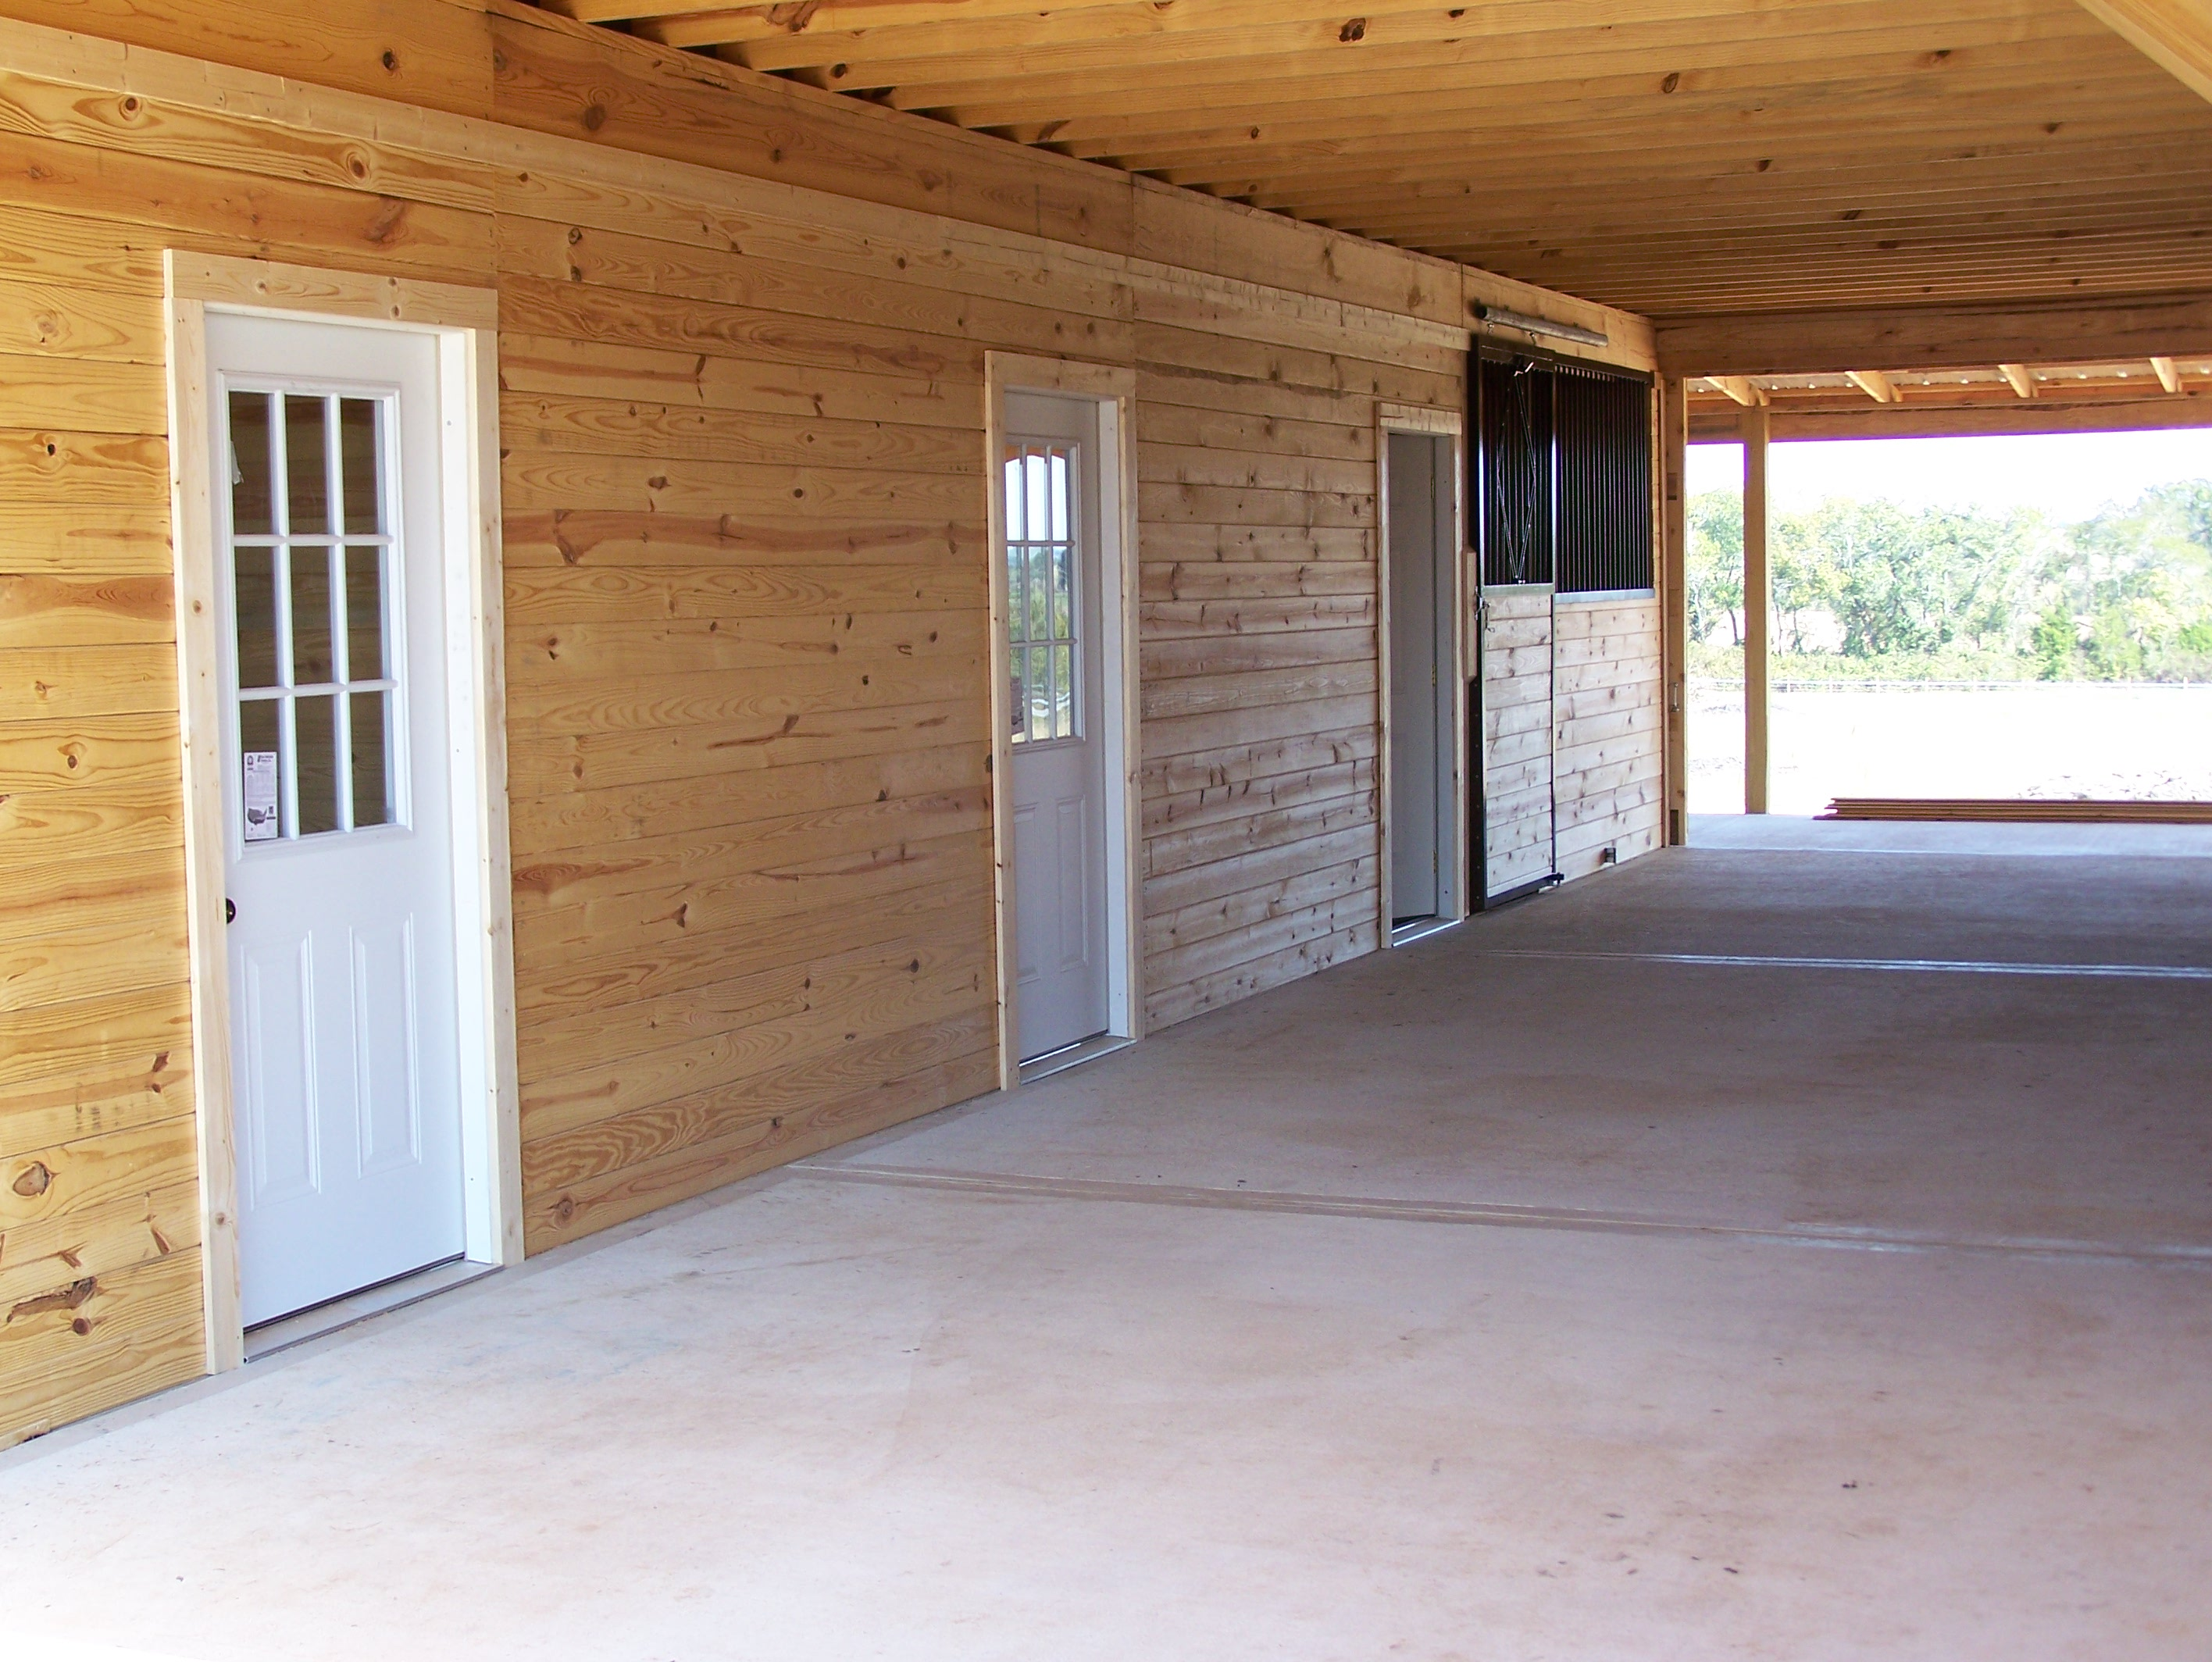 Horse Barn Design Ideas horse barn layout ideas Interior Photos